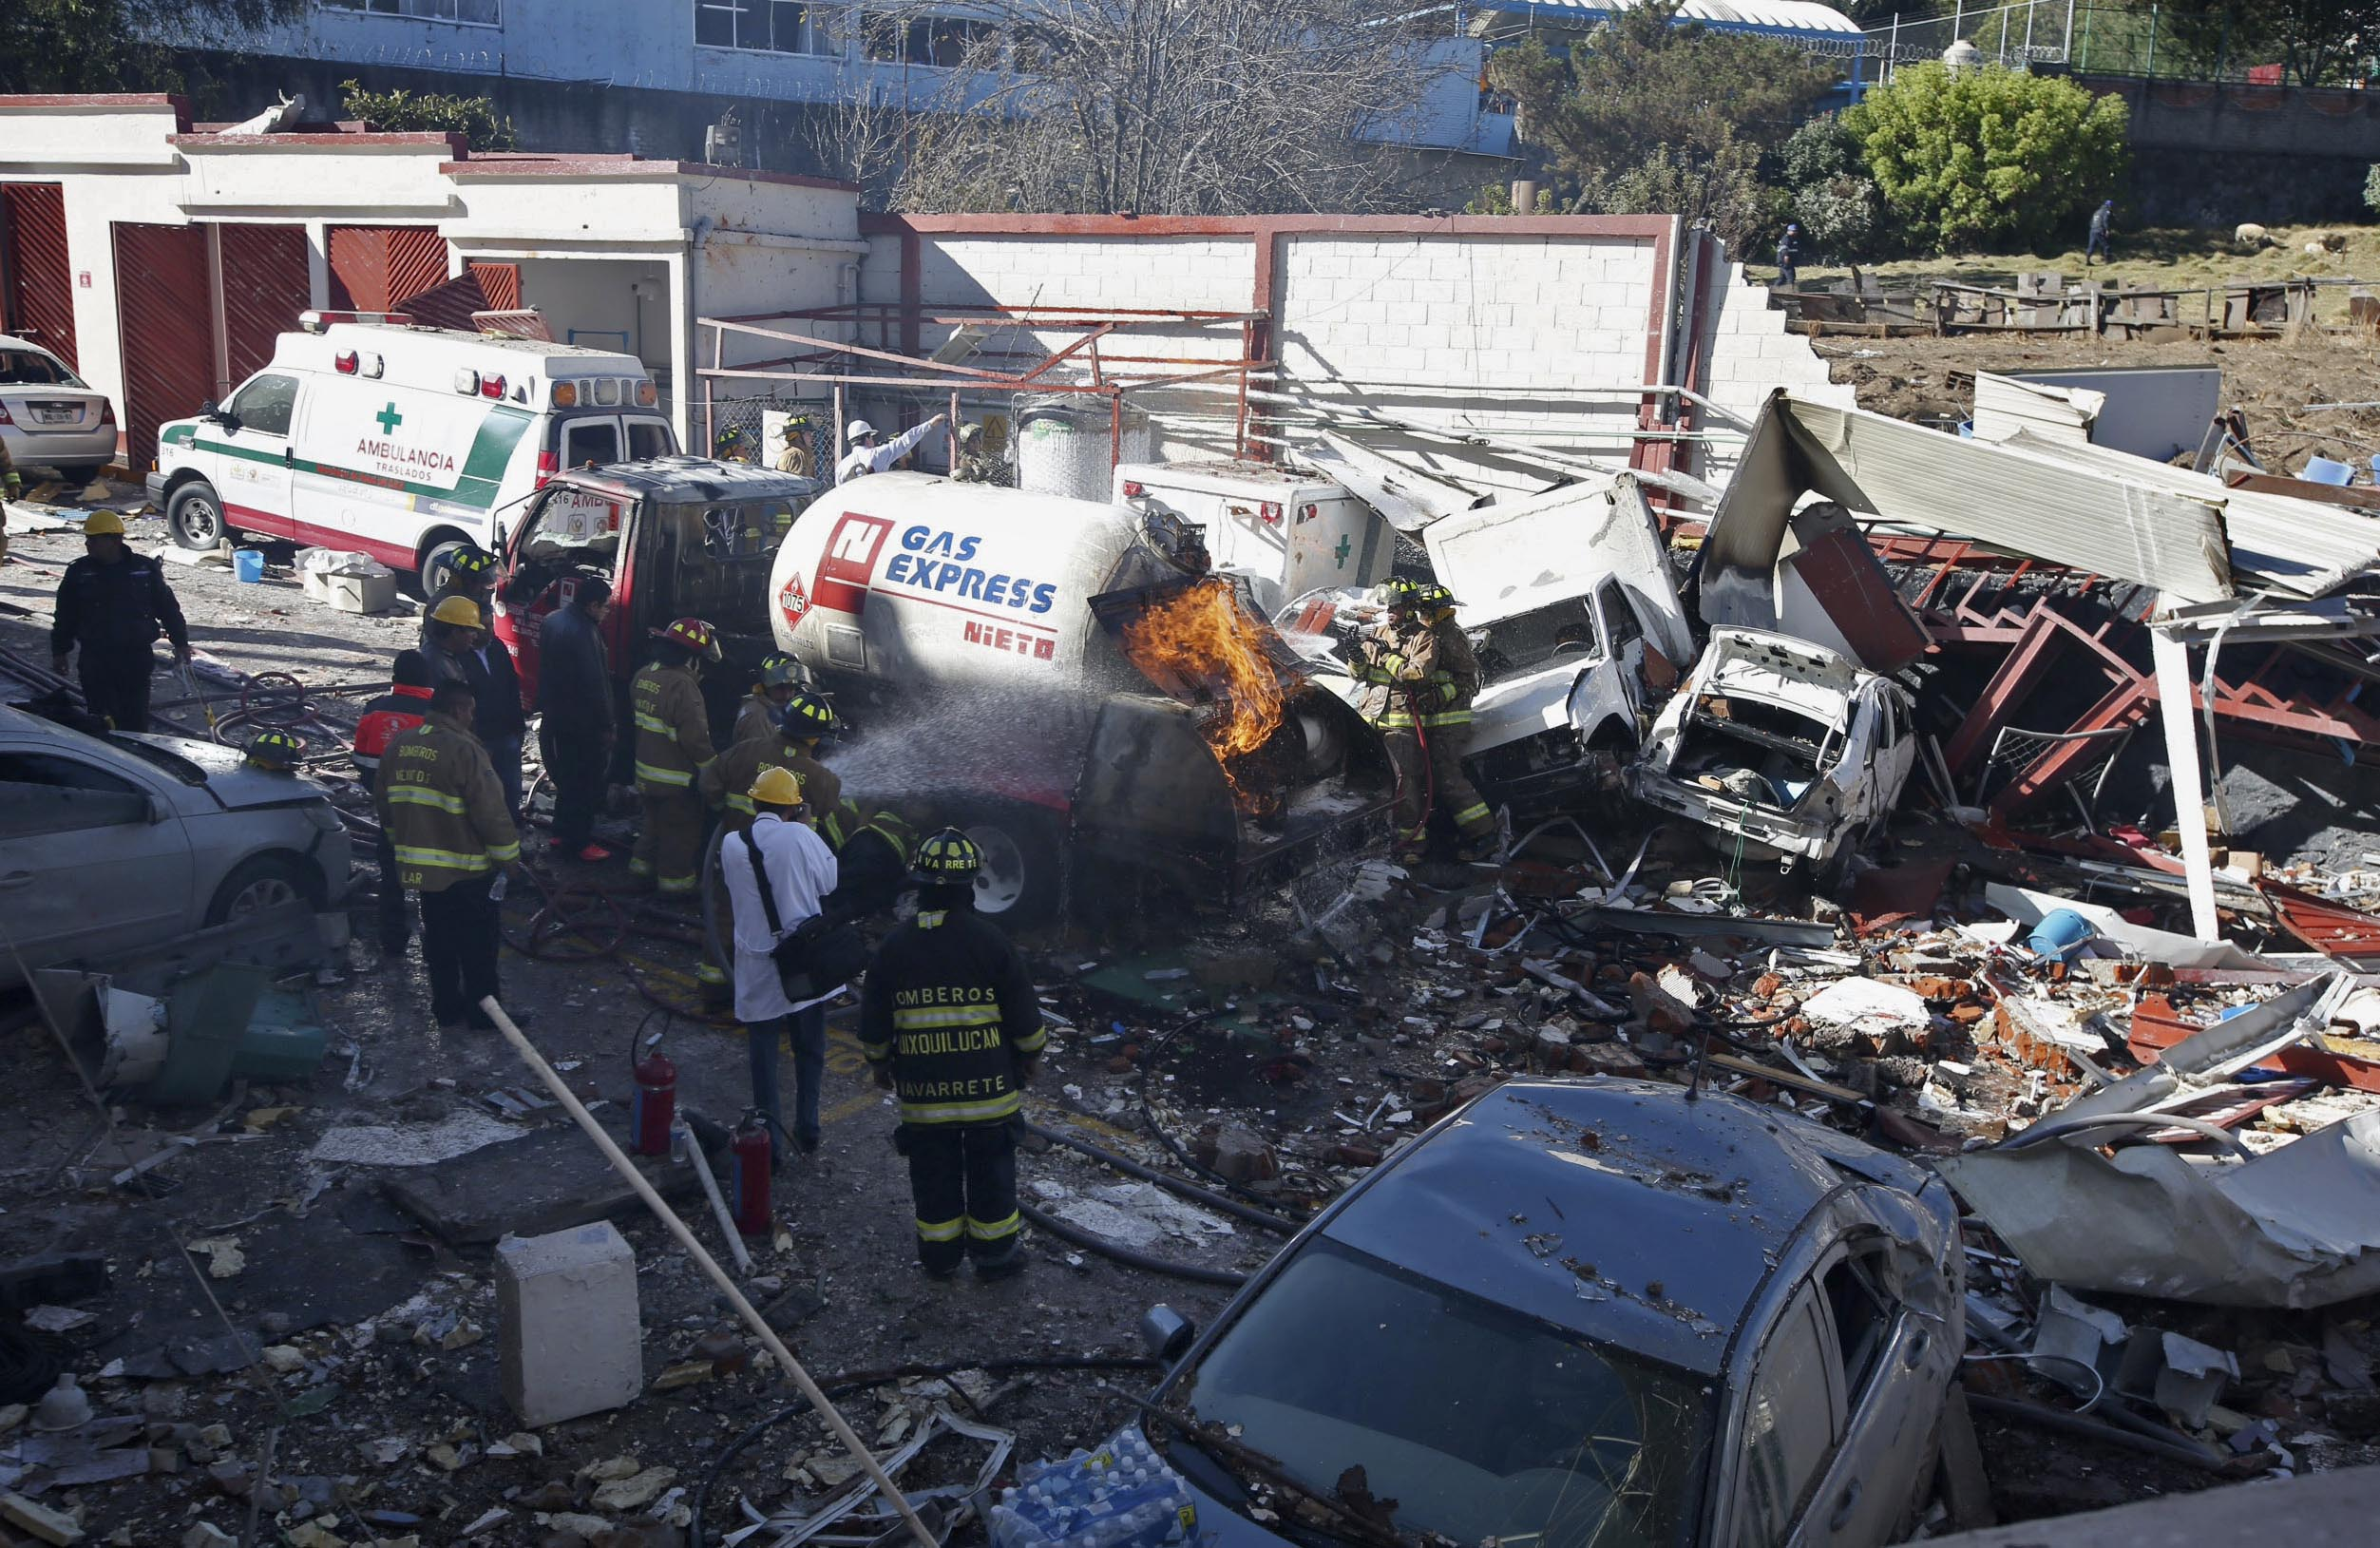 Worn bolts on gas truck caused hospital explosion in Mexico that killed 5 people | Fox News